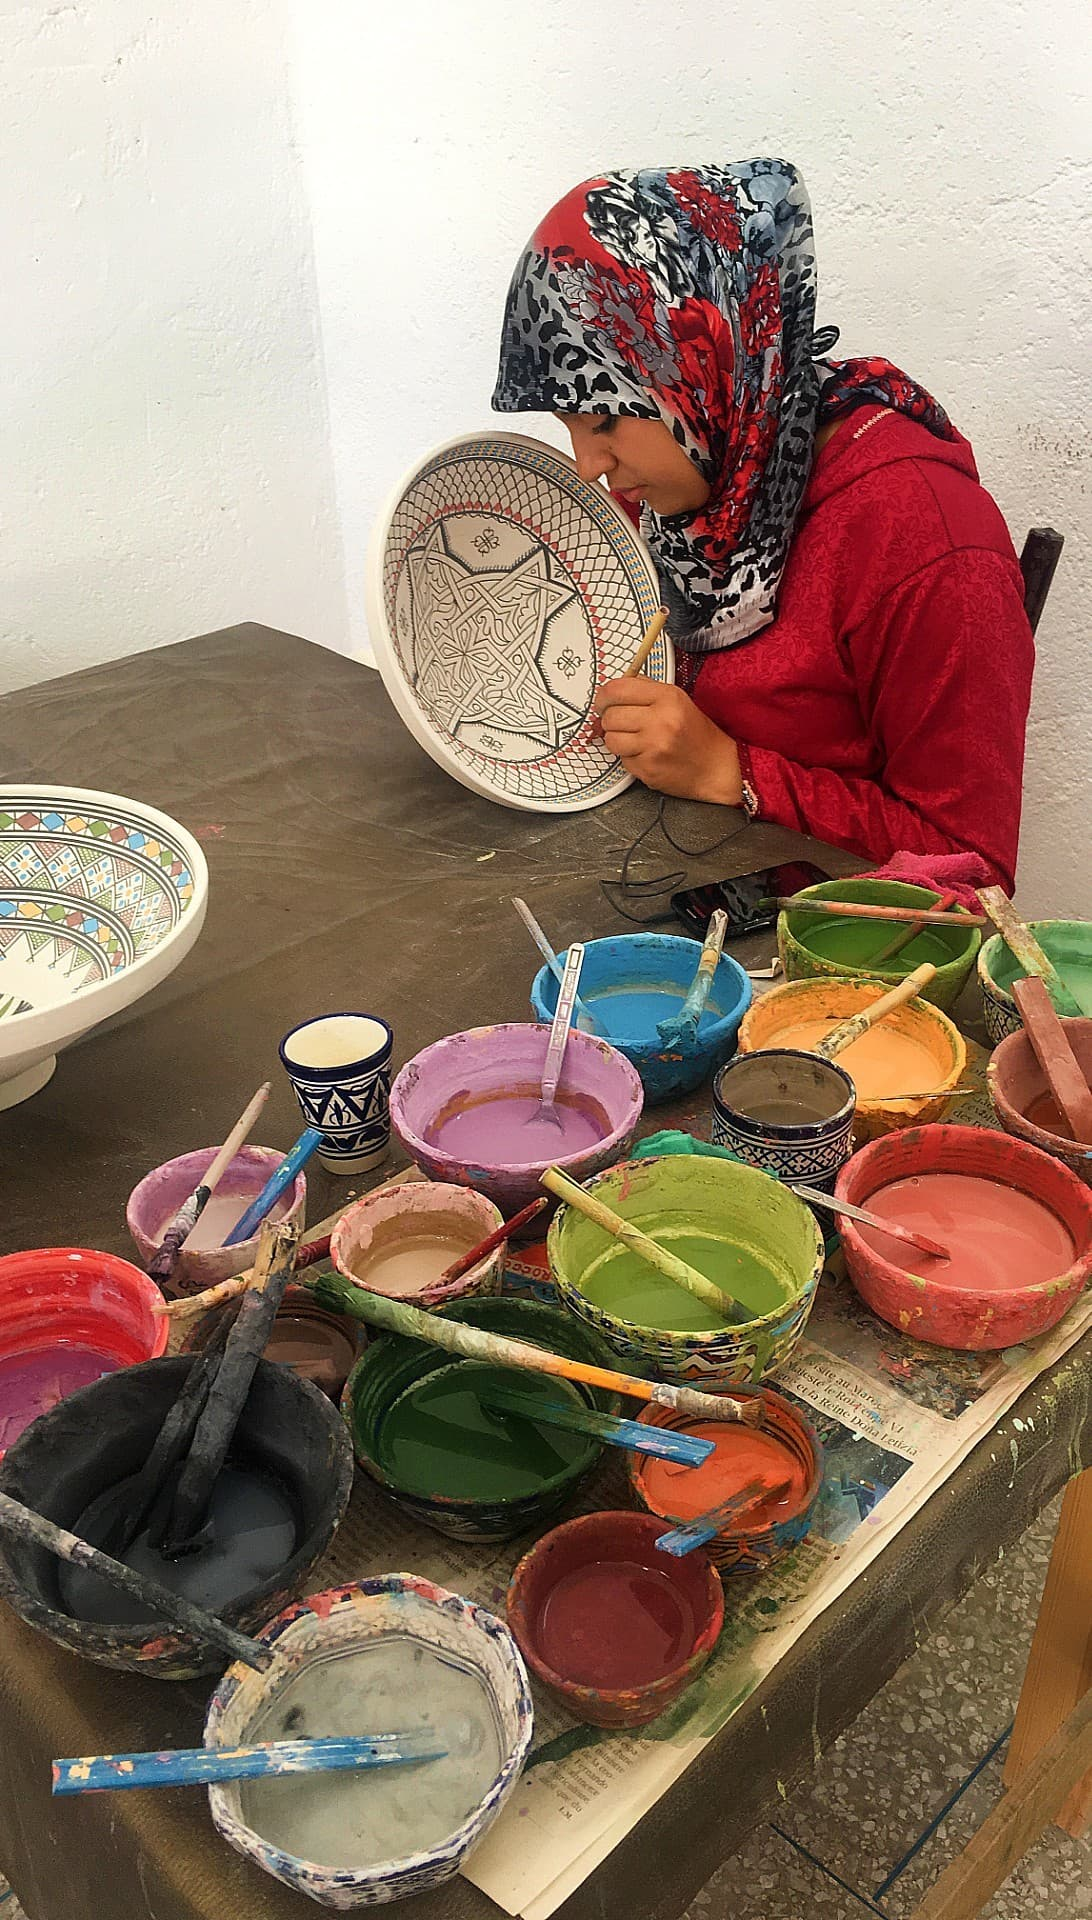 A woman painter at the ceramics workshop.